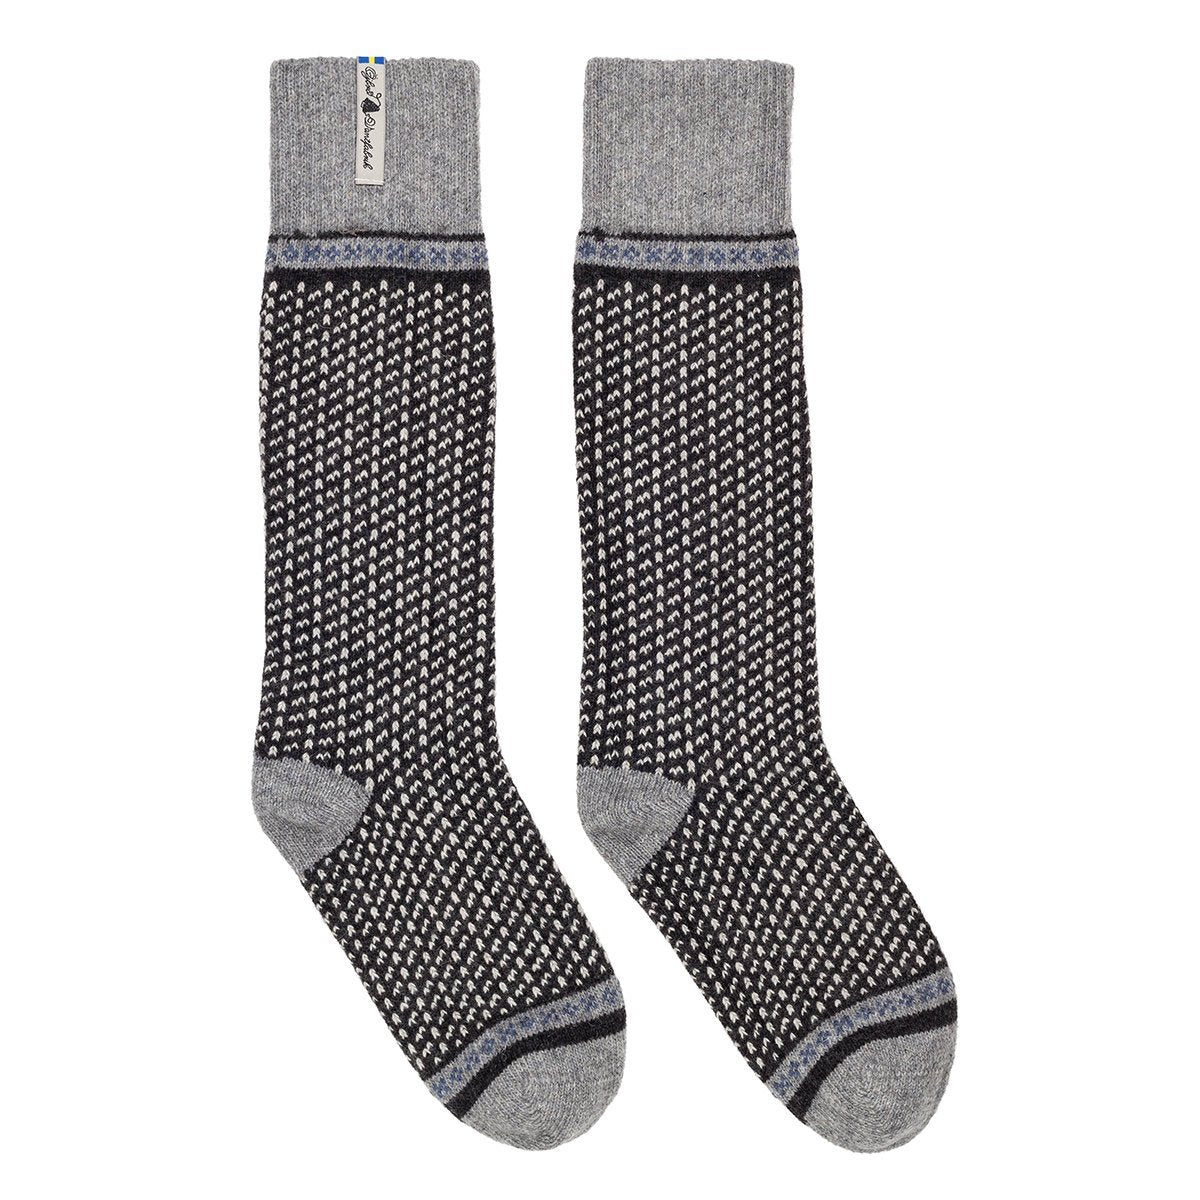 ÖSKA02SOLA, Öjbro Vantfabrik, Skaftö Sot Socks, Black,  Winter Socks | Warm Socks